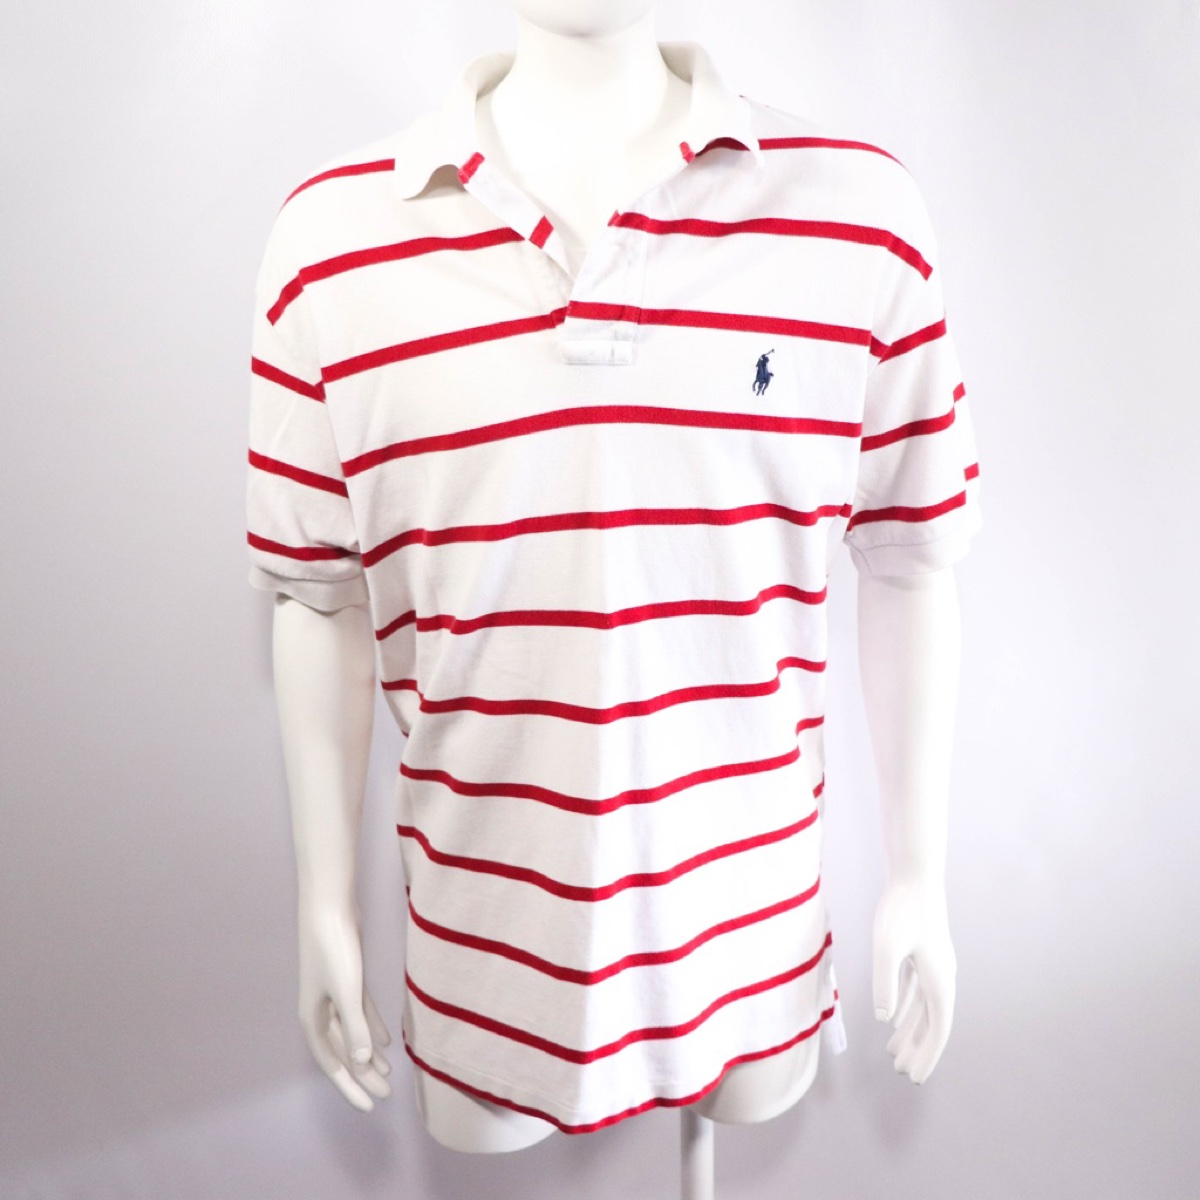 Red & White Striped Ralph Lauren Polo T-Shirt - Size Medium